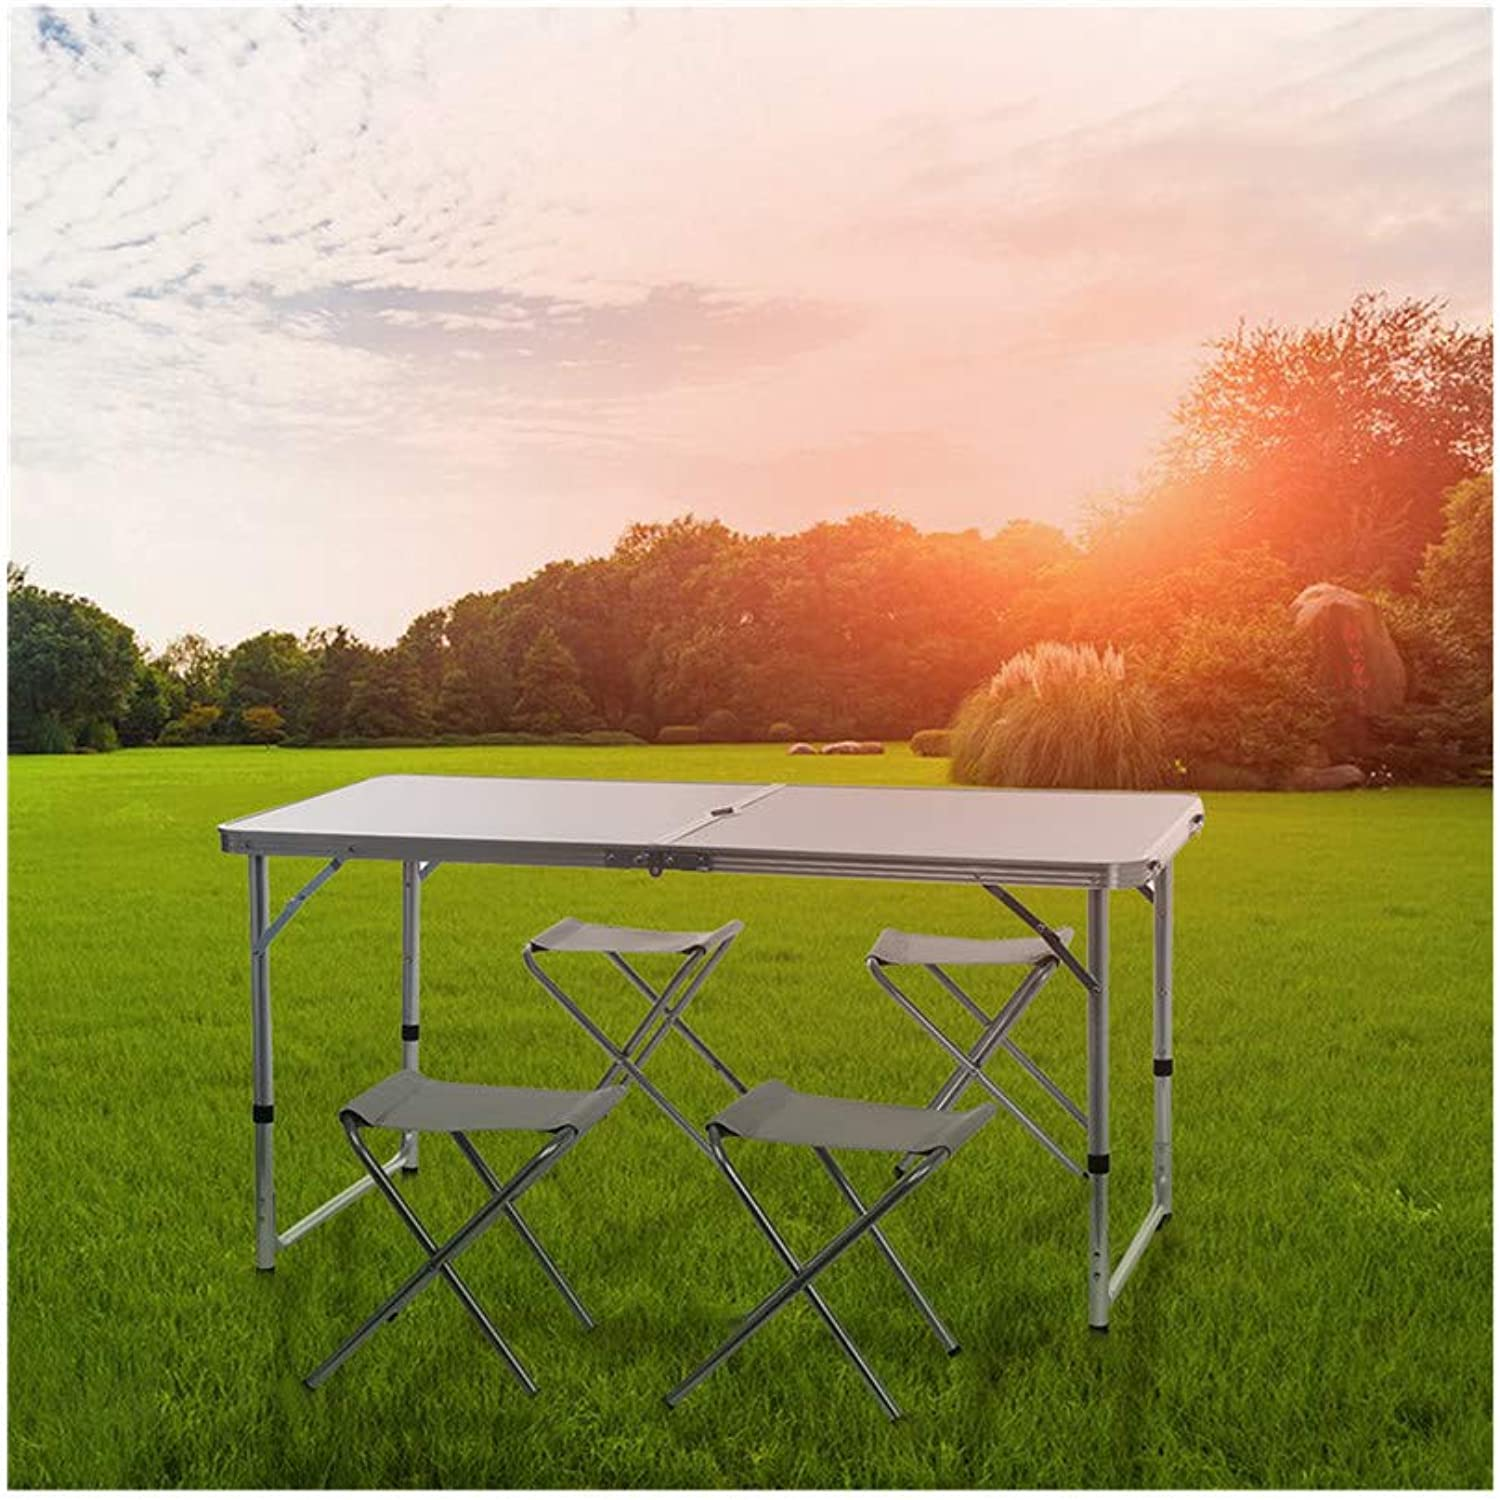 Kimanli Portable Camping Table 4-Person Folding Aluminum Picnic Party Dining Desk in Out